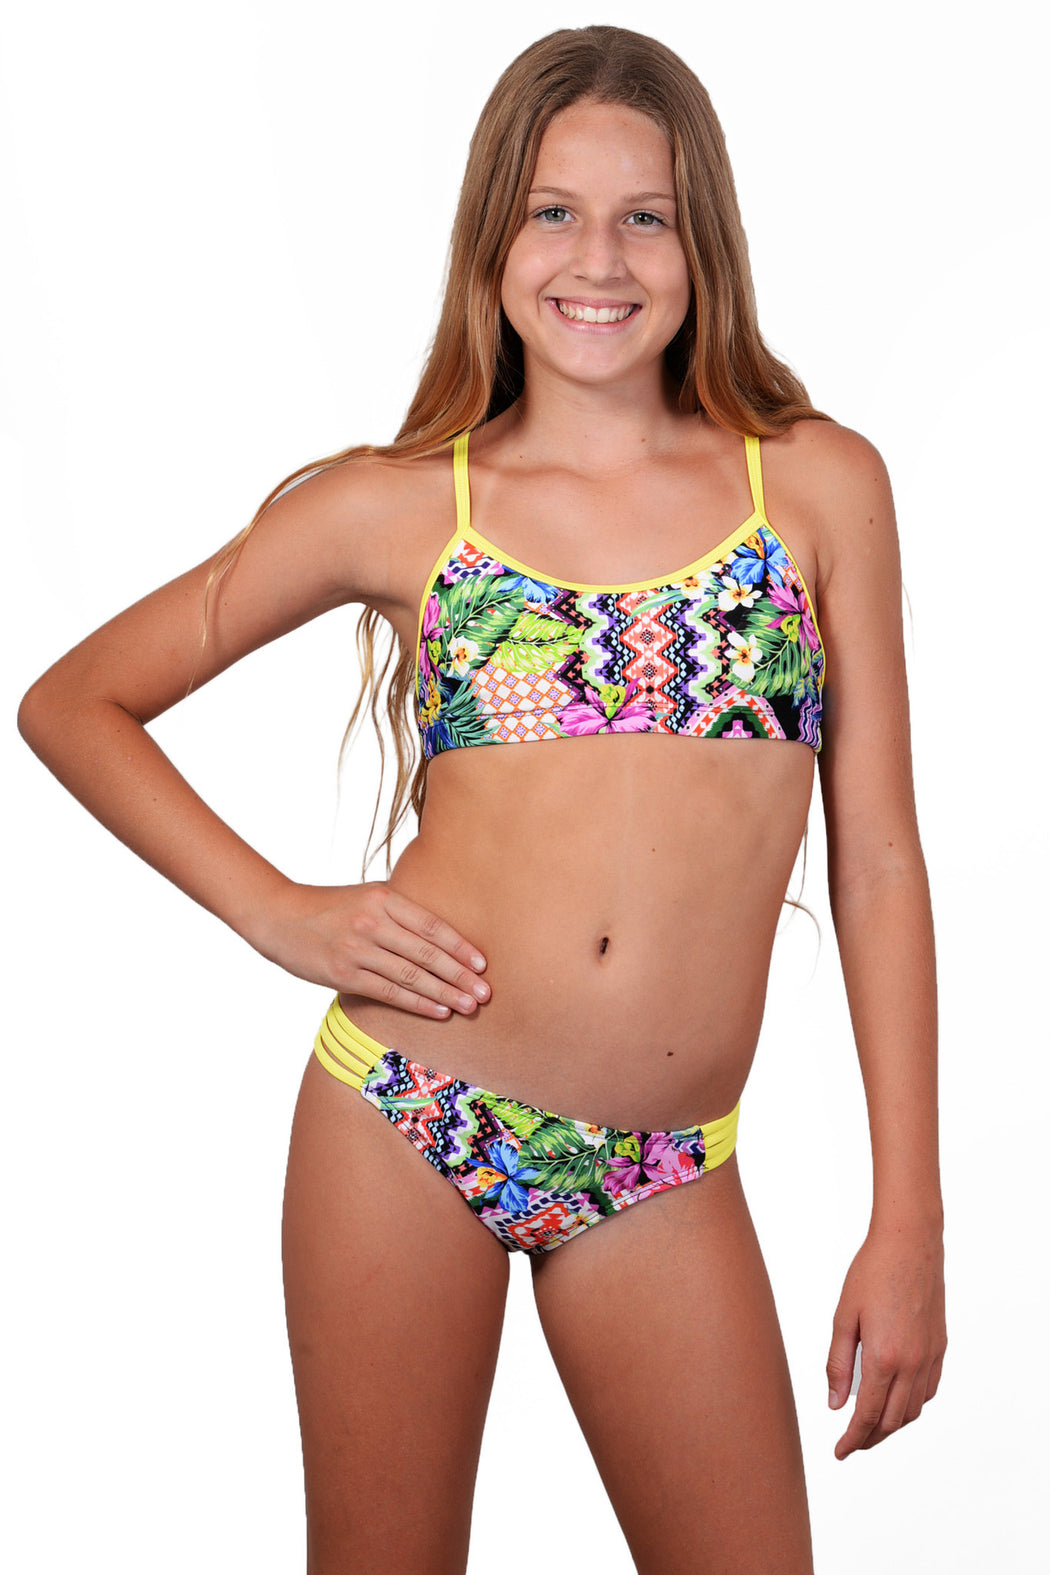 Finch Girls bikini with active top and hipster bottoms